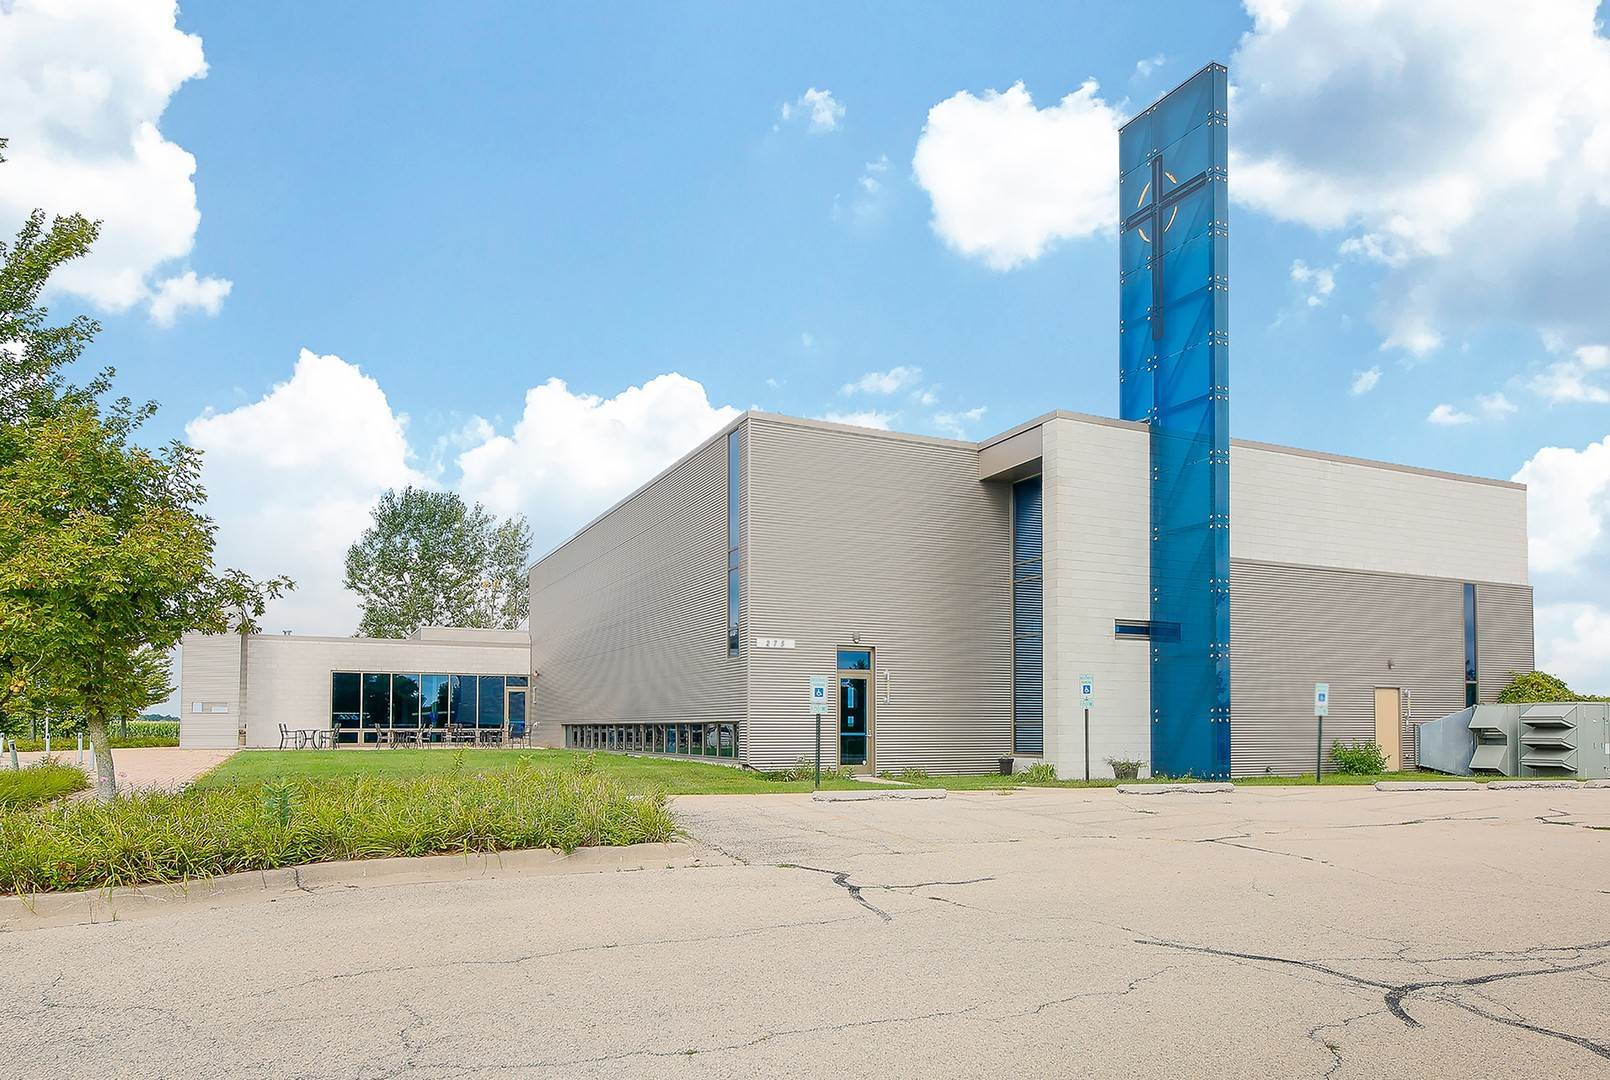 Commercial for Sale at 275 S Barnes Road Aurora, Illinois 60506 United States